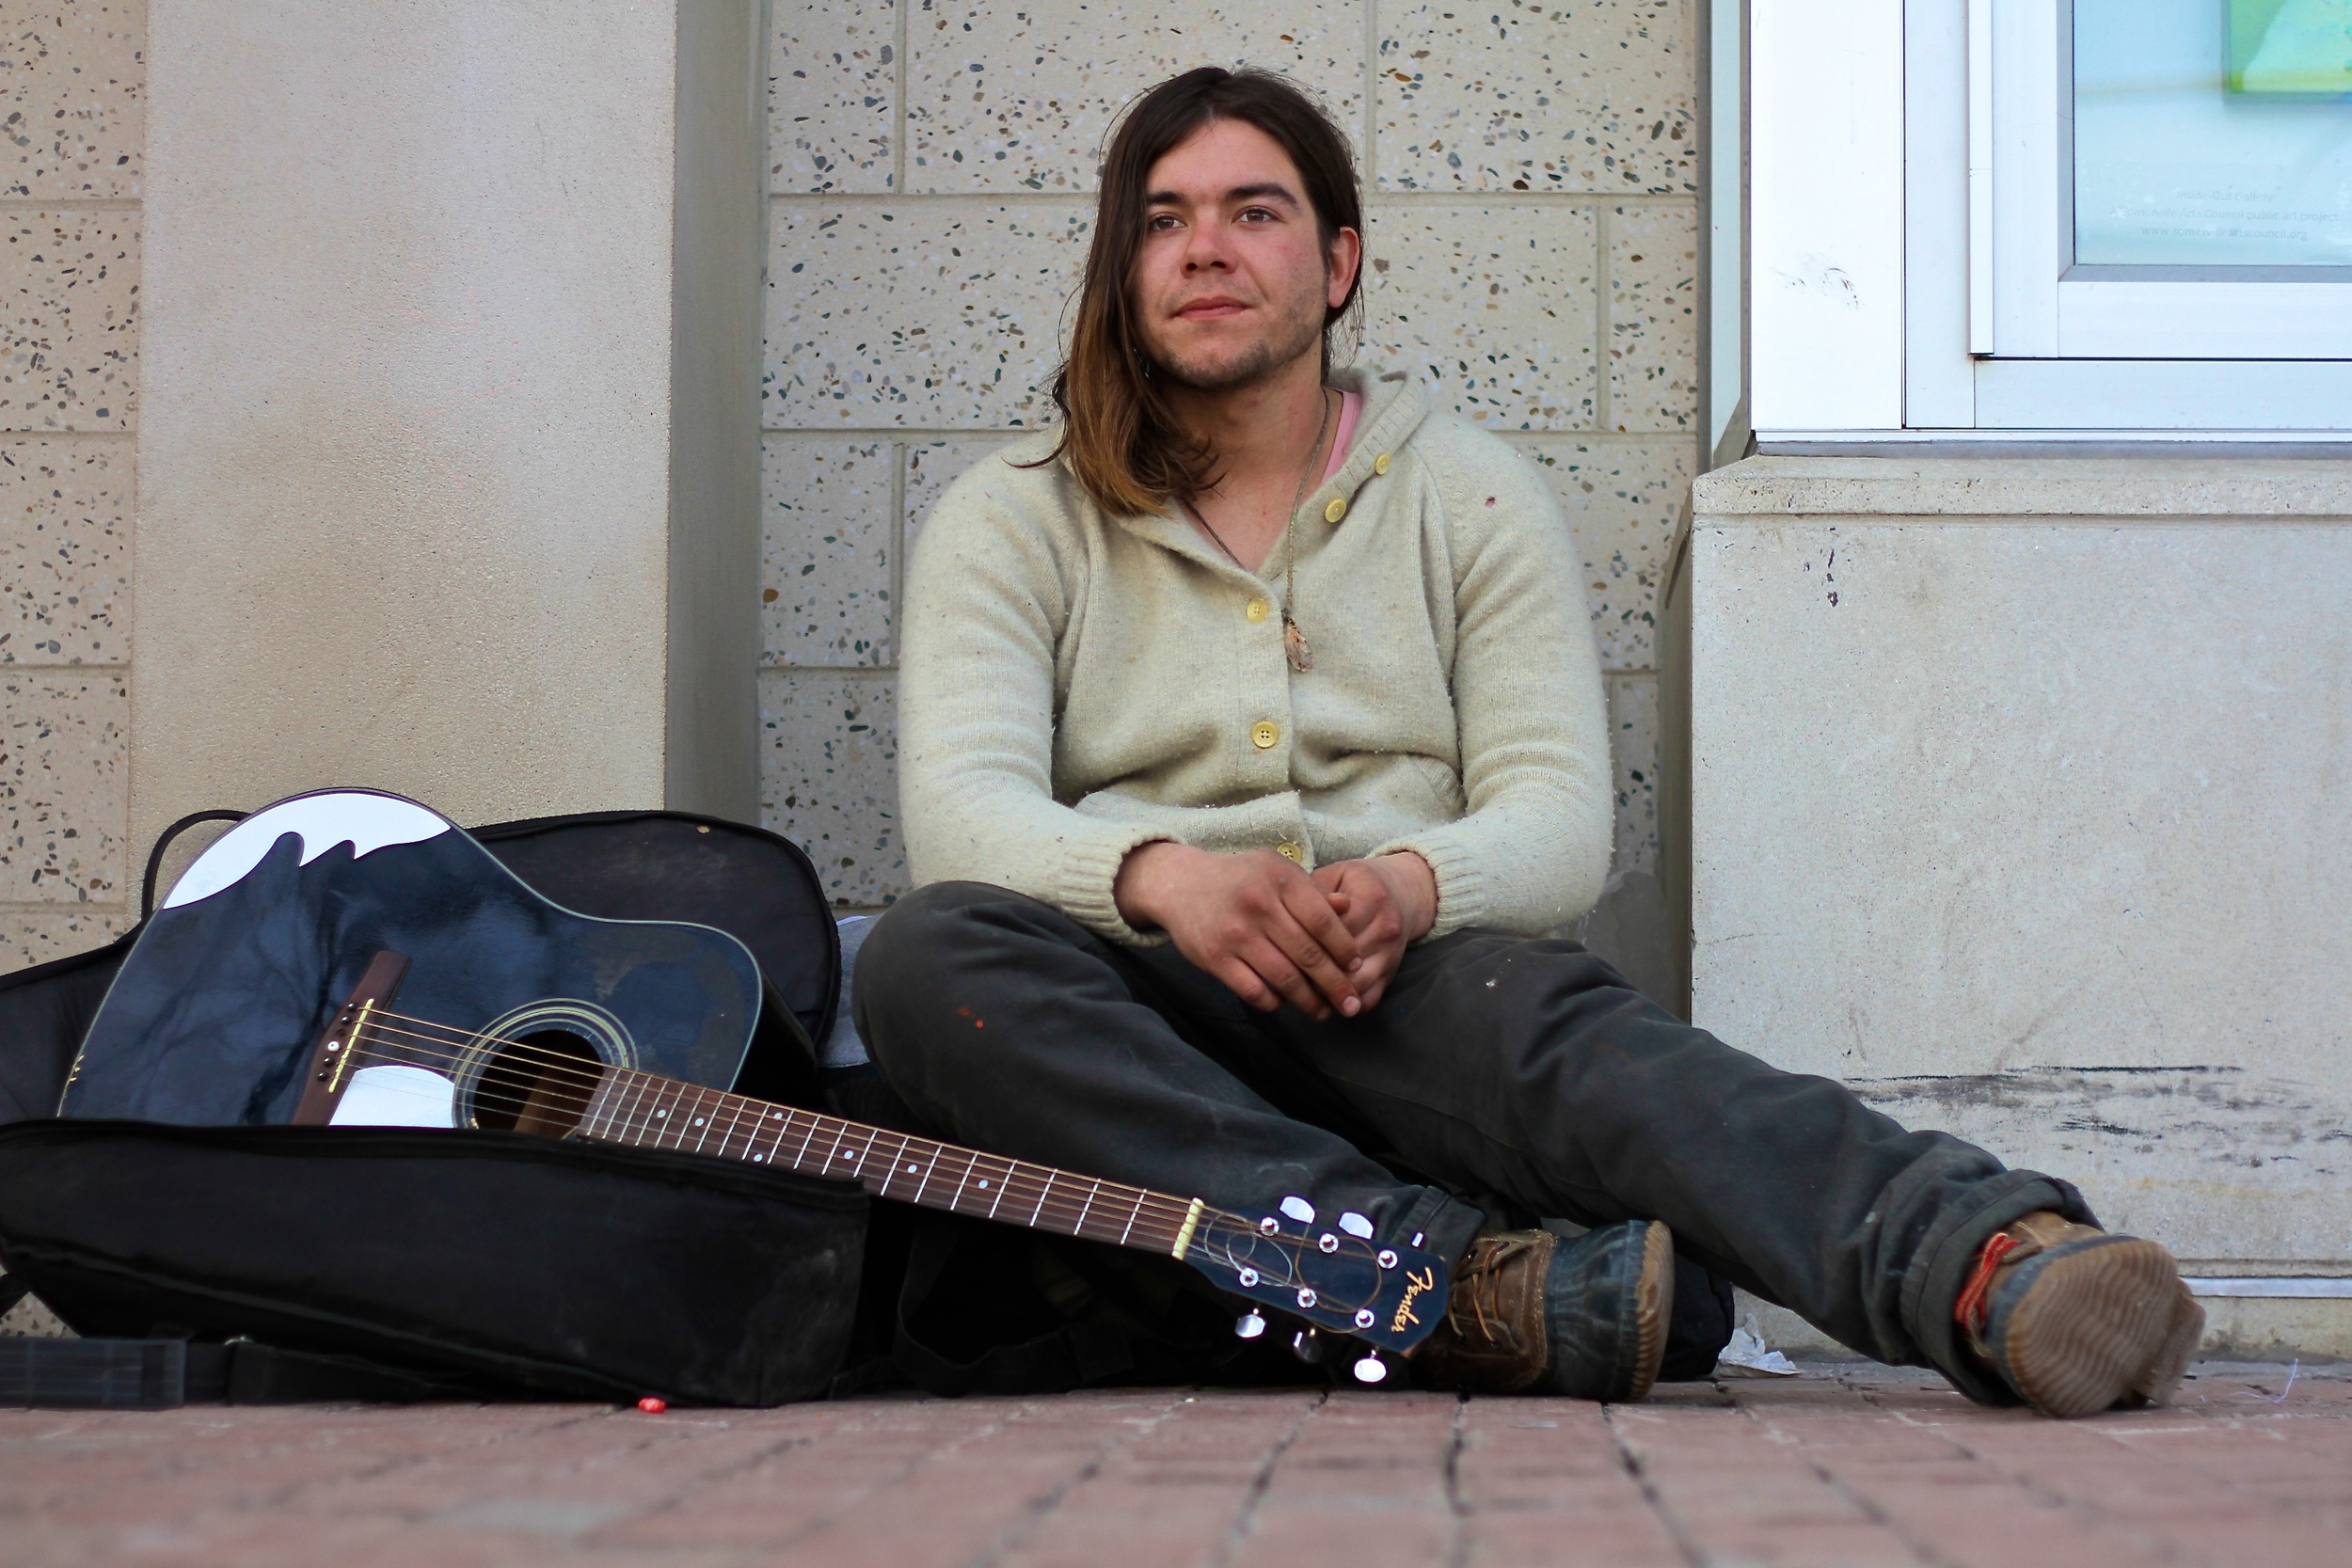 """I met this man in Davis Square. He is from the Bay Area in San Francisco, and he hitchhiked, flew, and carpooled his way to where he is now. Right now he is homeless, but he talked of sleeping, at, quoted, an """"old gay dude's house."""" I asked him what type of music he plays, and he replied with """"my music."""" I liked this answer, because of its simplicity. The name of this post comes from the book, Into the Wild. This man was very similar to Chris McCandless, who was the main character of the story. Similar to McCandless, this man went to a Rainbow Gathering, which are temporary gatherings which is sort of a place for hippies to gather. These Gatherings go against society's values. McCandless stayed at a place called Slab City in California, which has similarities to these Rainbow Gatherings, based on what this man said and my research. I asked him to play me some music, which he did, and he was very talented."""